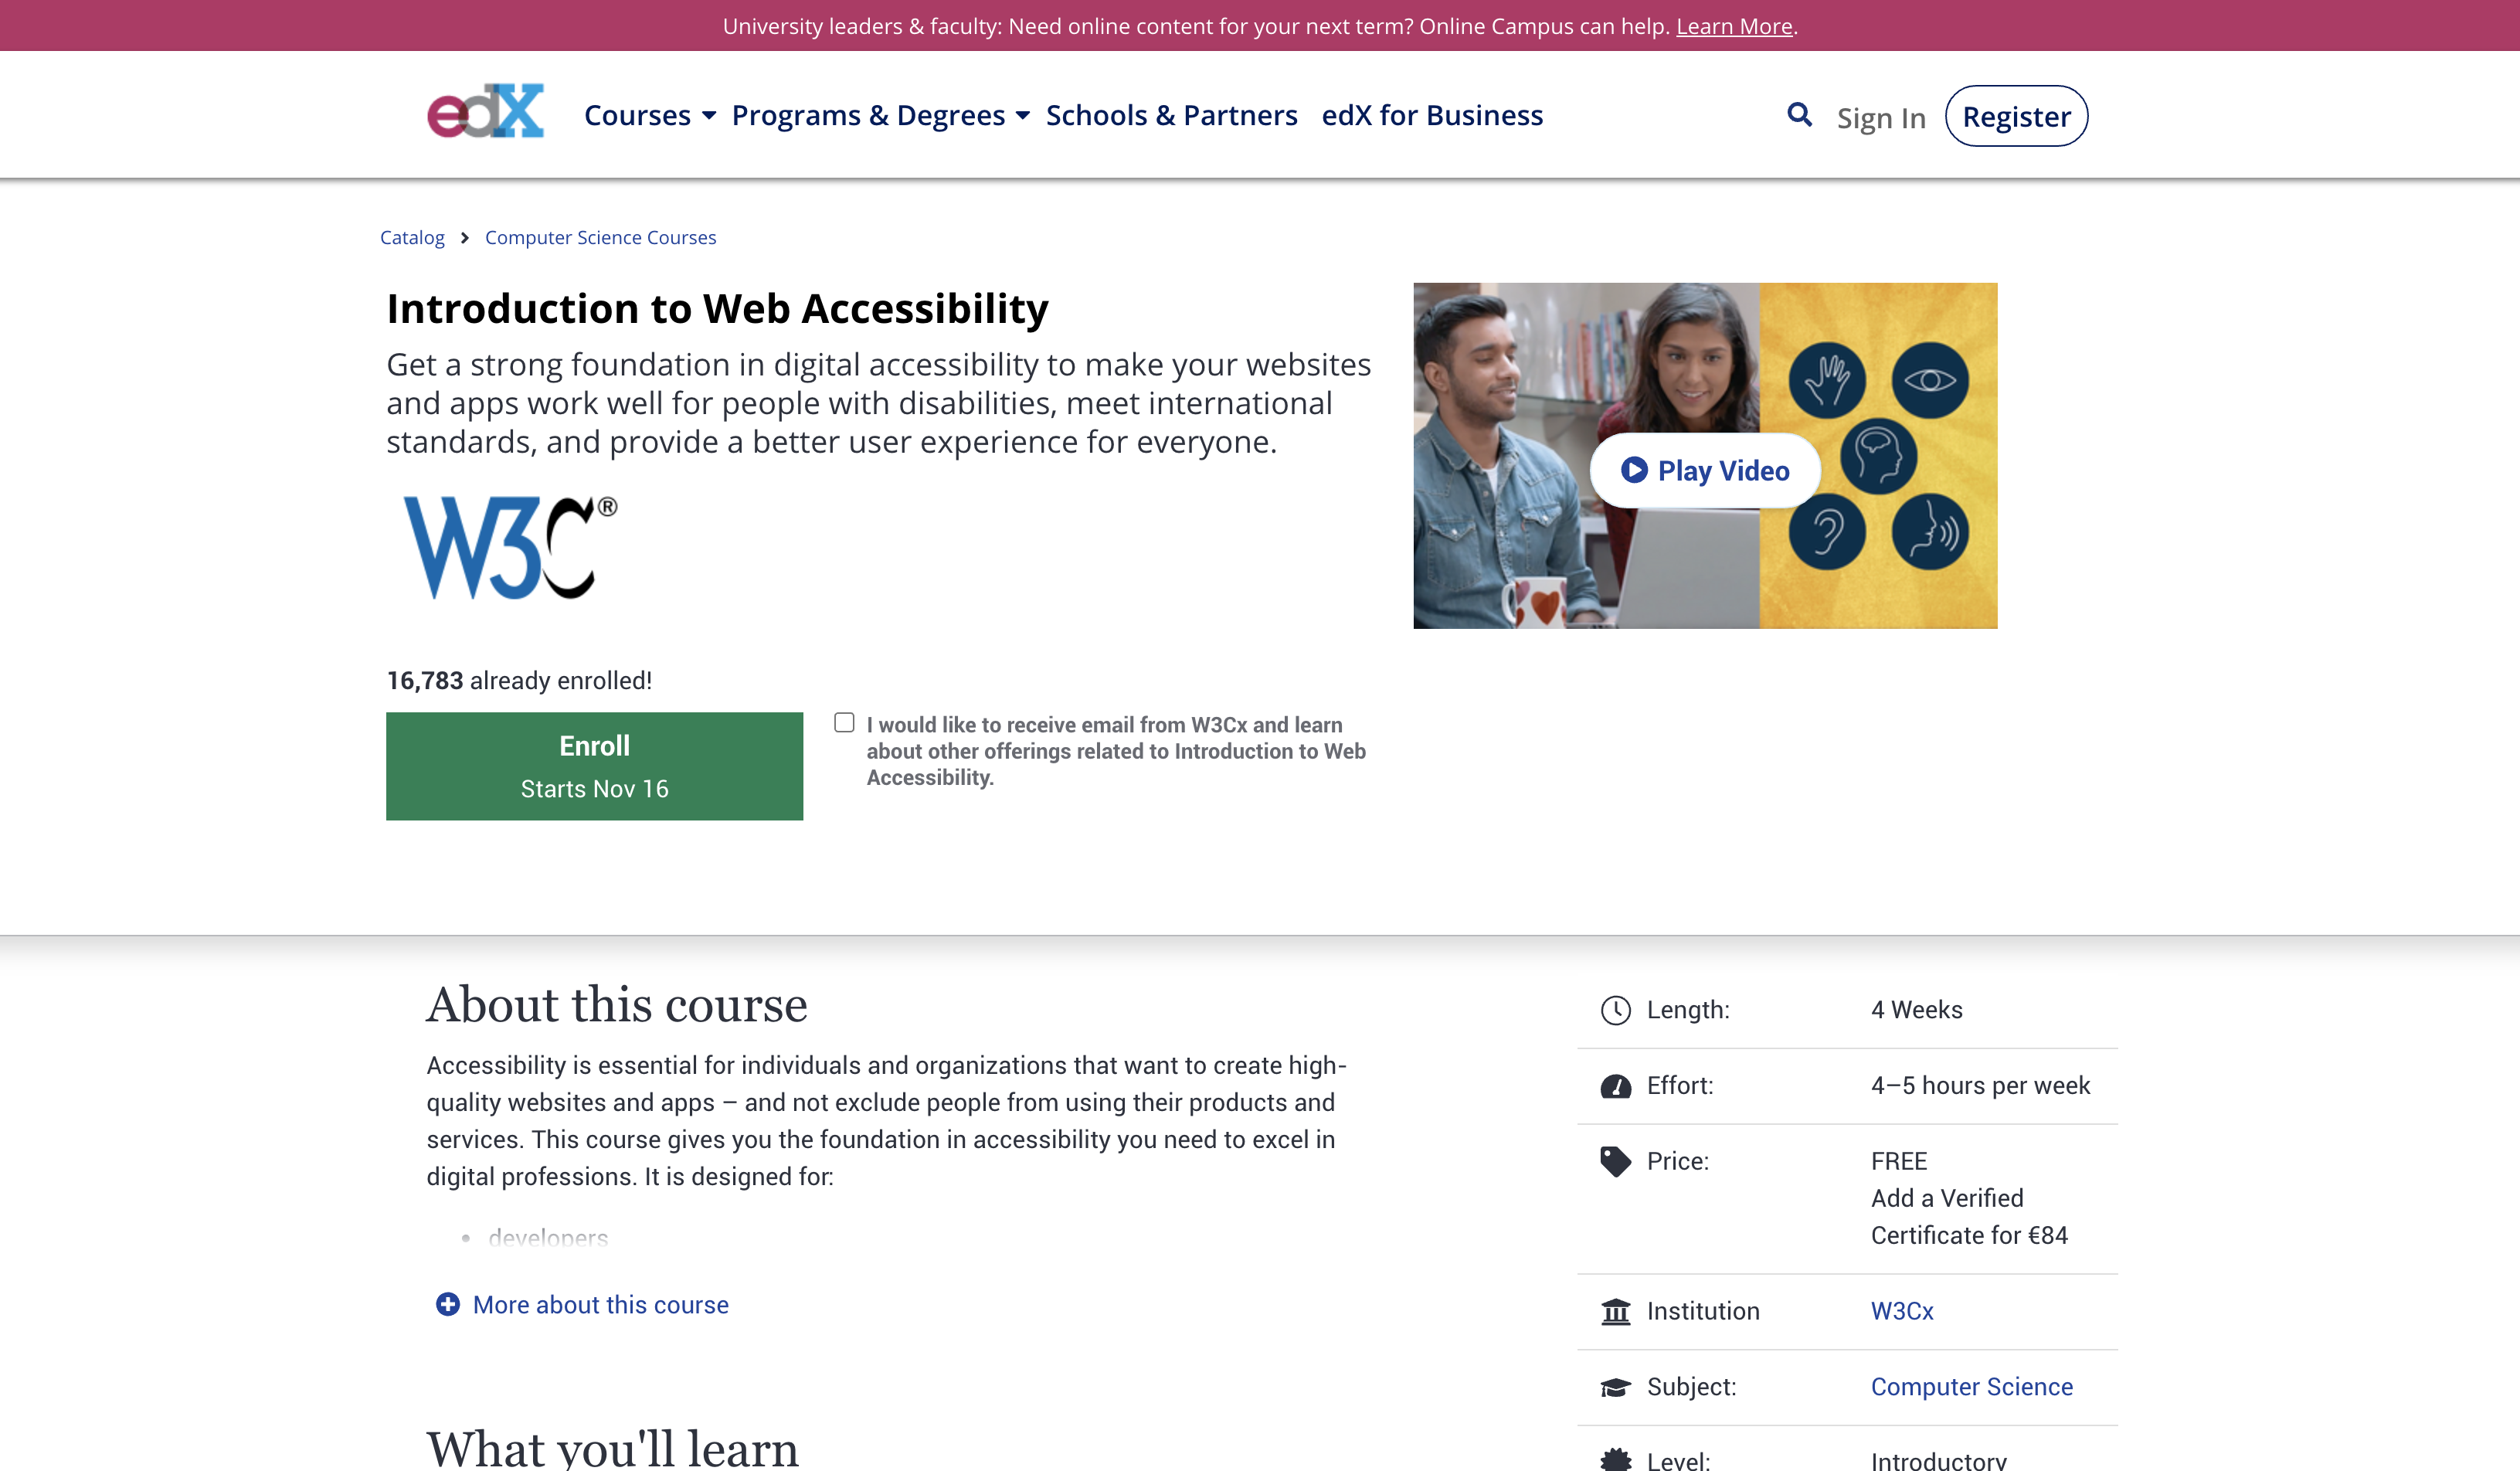 A screenshot of the website edX where you could follow the Introduction to Web Accessibility training